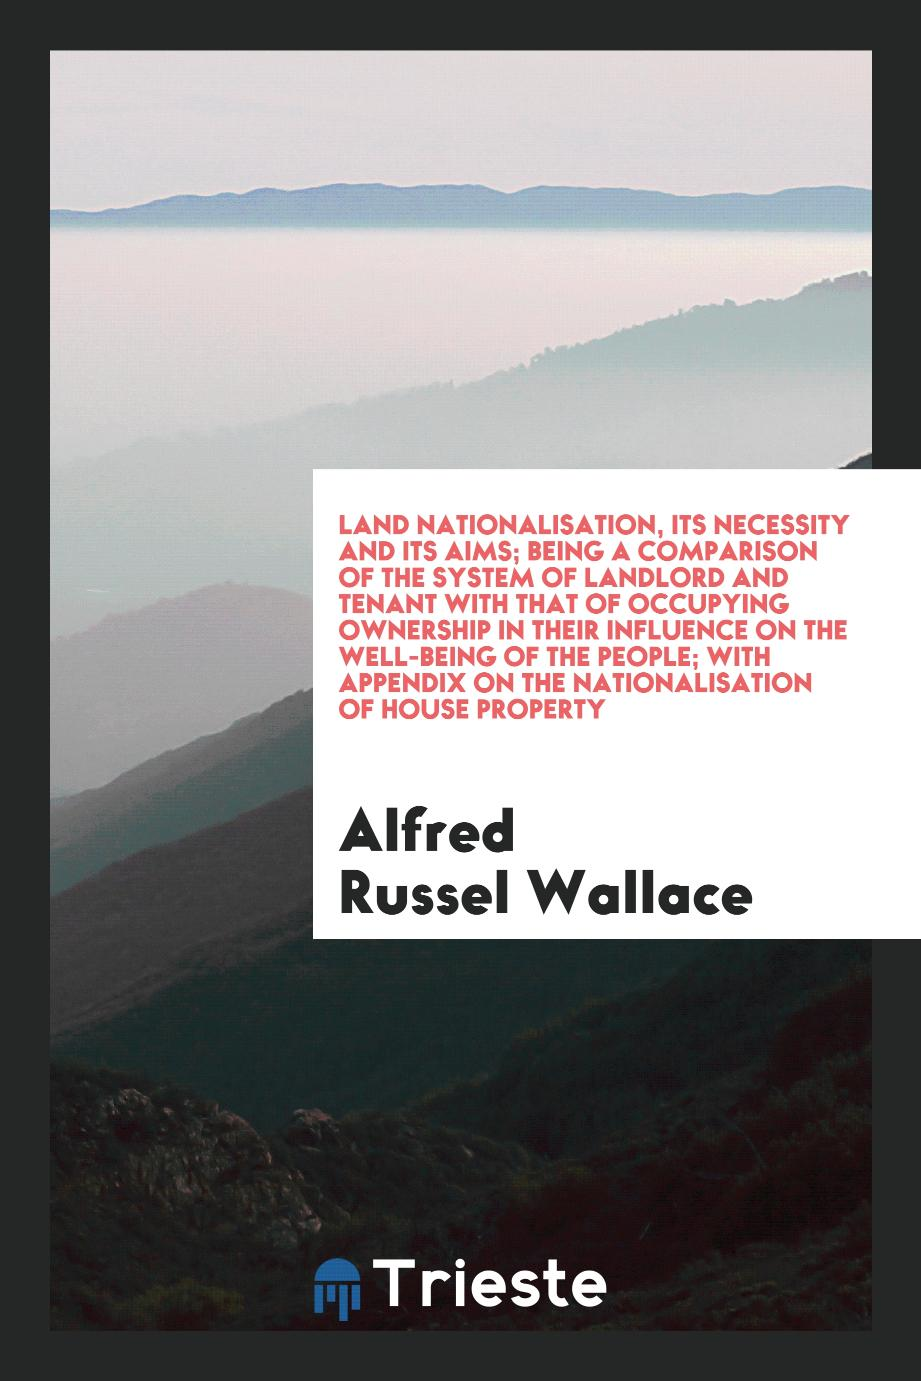 Land nationalisation, its necessity and its aims; being a comparison of the system of landlord and tenant with that of occupying ownership in their influence on the well-being of the people; with appendix on the nationalisation of house property